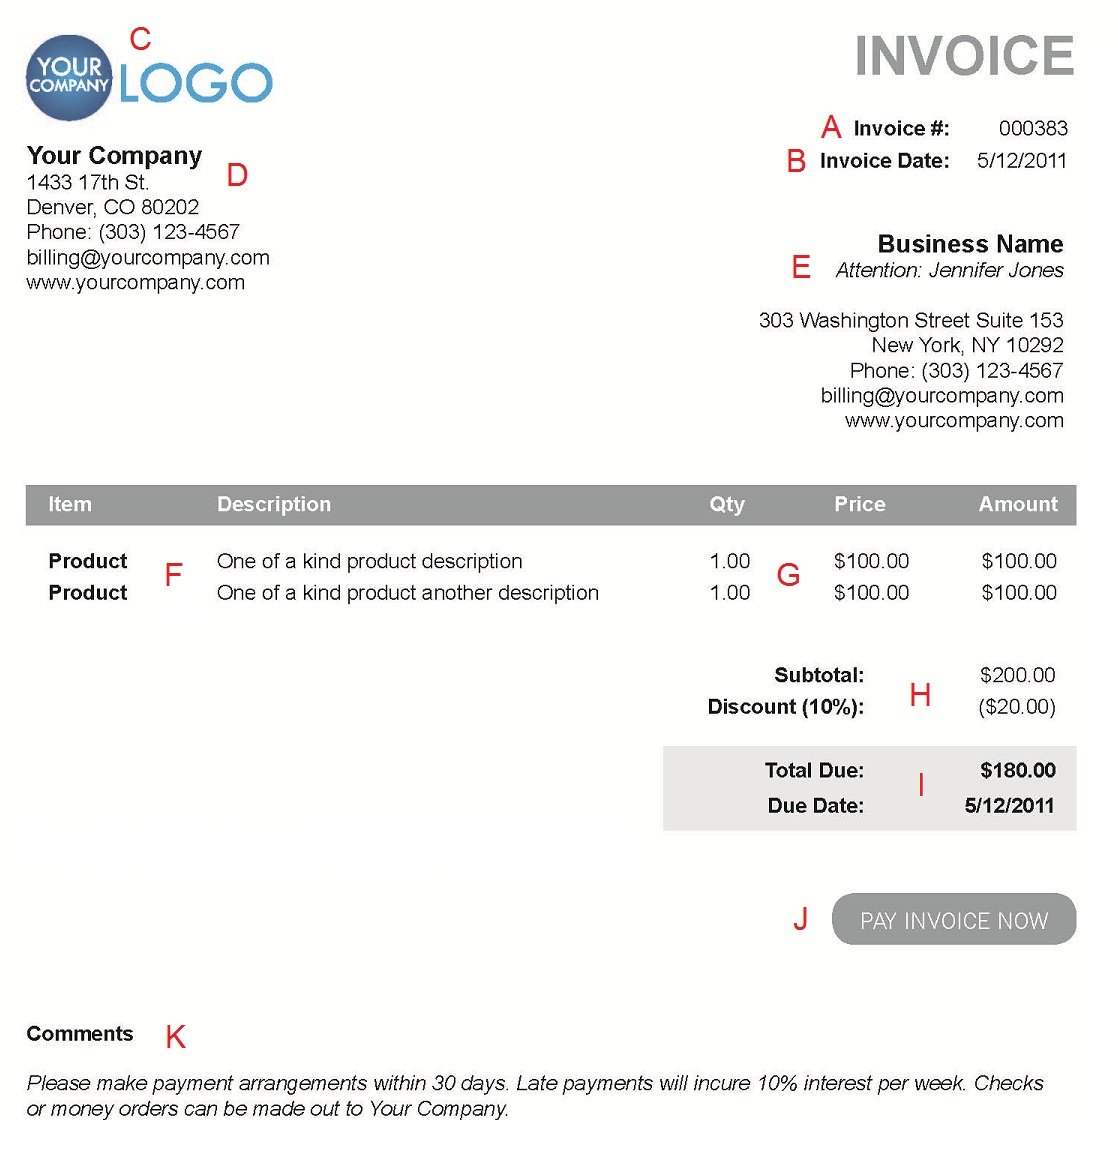 Soulfulpowerus  Prepossessing The  Different Sections Of An Electronic Payment Invoice With Lovely A  With Awesome Equipment Interchange Receipt Also Receipts Images In Addition Kale Receipts And Legal Receipt As Well As Hamburger Receipts Additionally Lil Wayne Receipt Mp From Paysimplecom With Soulfulpowerus  Lovely The  Different Sections Of An Electronic Payment Invoice With Awesome A  And Prepossessing Equipment Interchange Receipt Also Receipts Images In Addition Kale Receipts From Paysimplecom